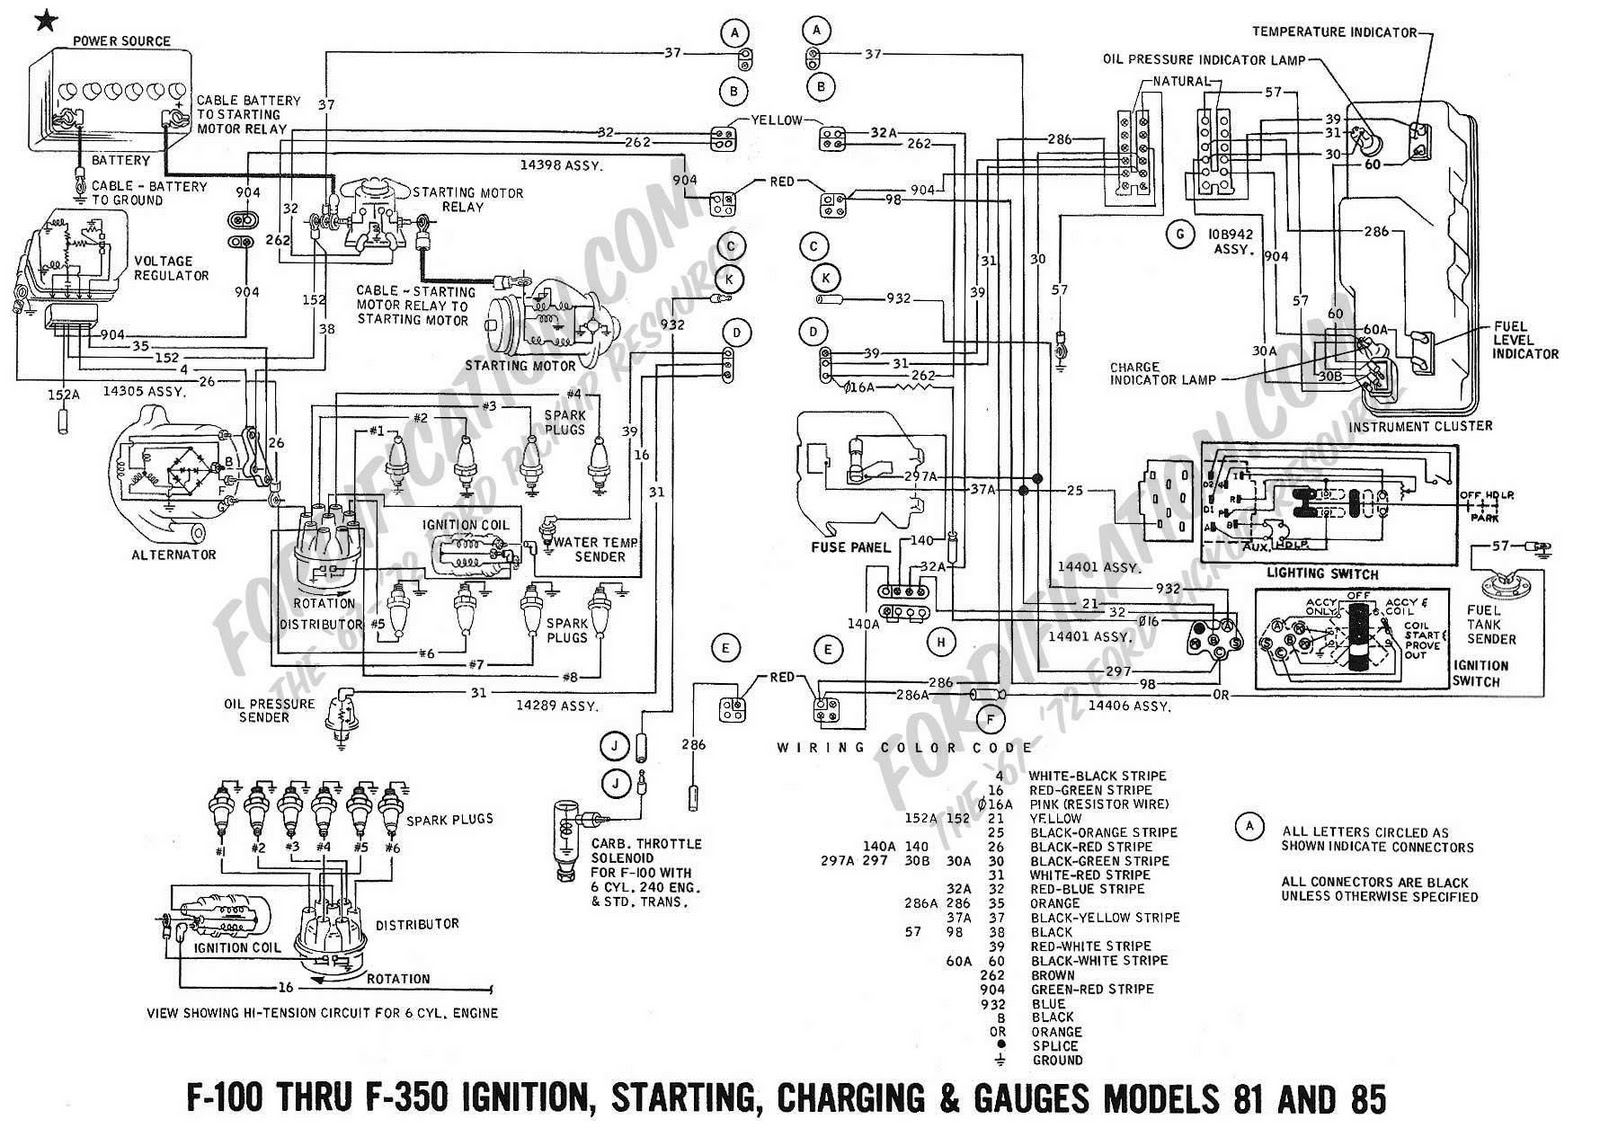 1969 ford f250 wiring diagram wiring diagram data schema 1969 Ford Custom 500 Wiring Diagram 1969 ford ignition switch diagram wiring block diagram 1971 ford f250 wiring diagram 1969 ford f250 wiring diagram